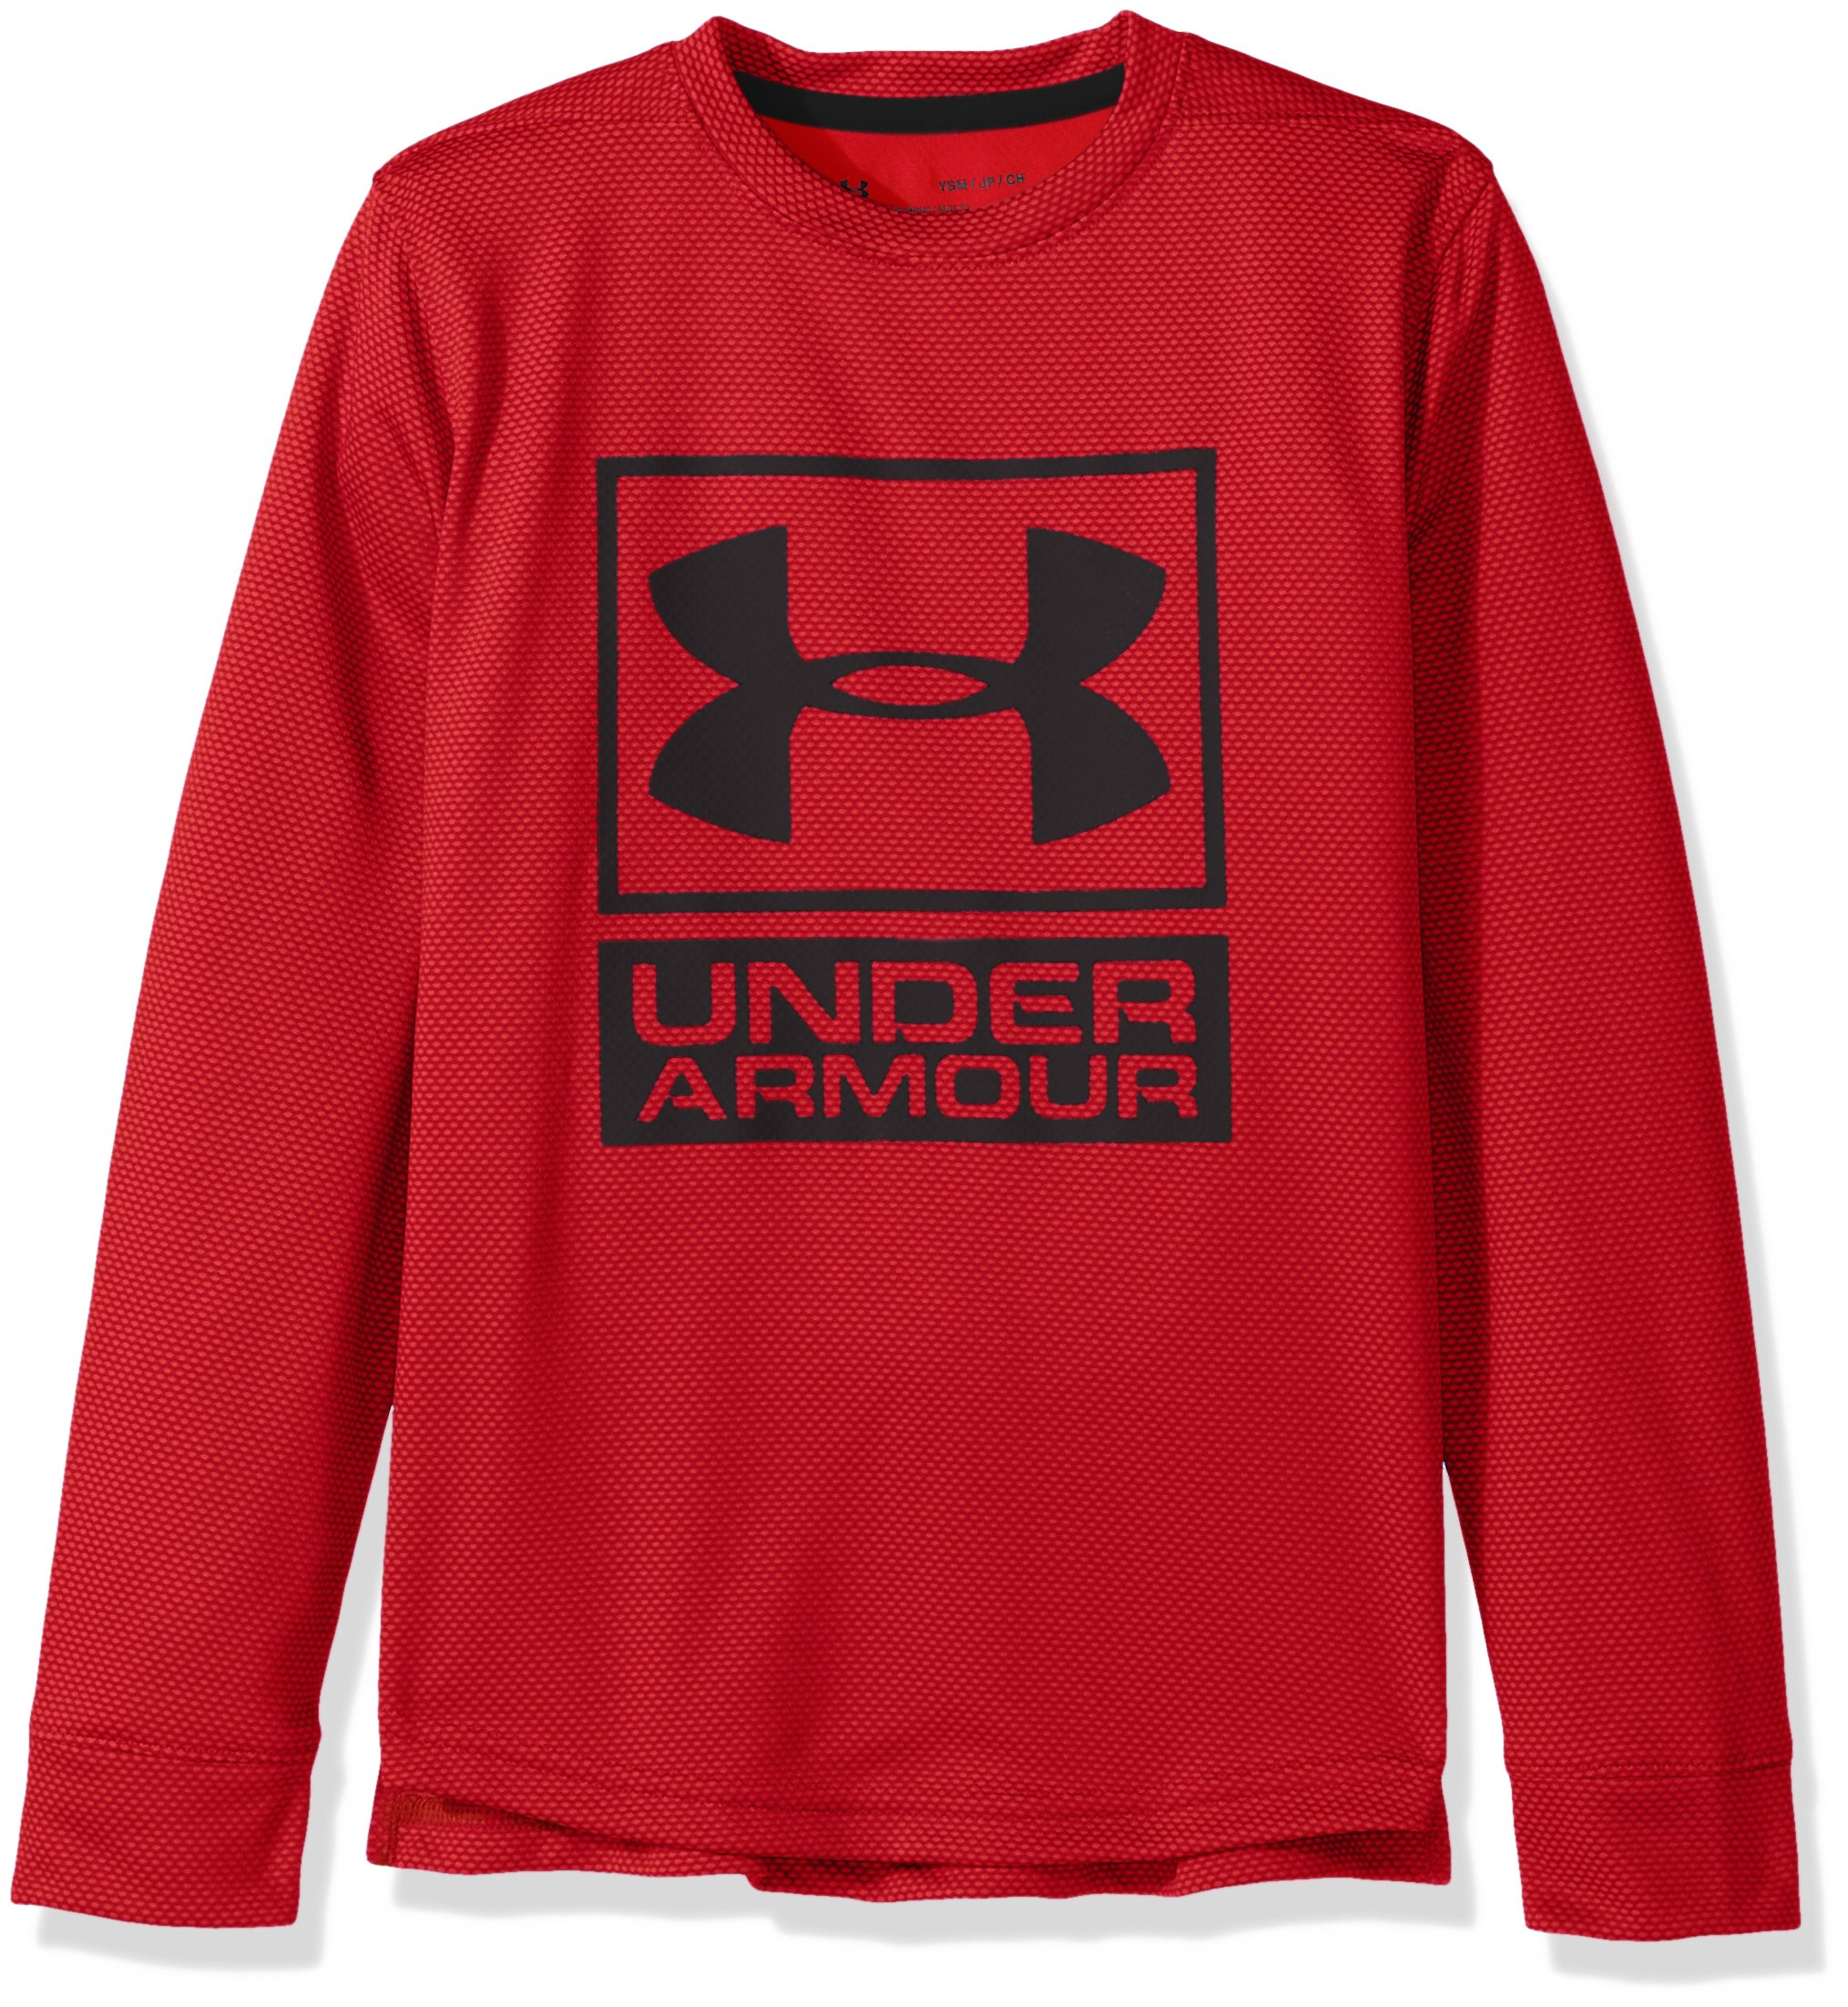 Under Armour Boys' Tech Textured Crew,Red /Black, Youth X-Small by Under Armour